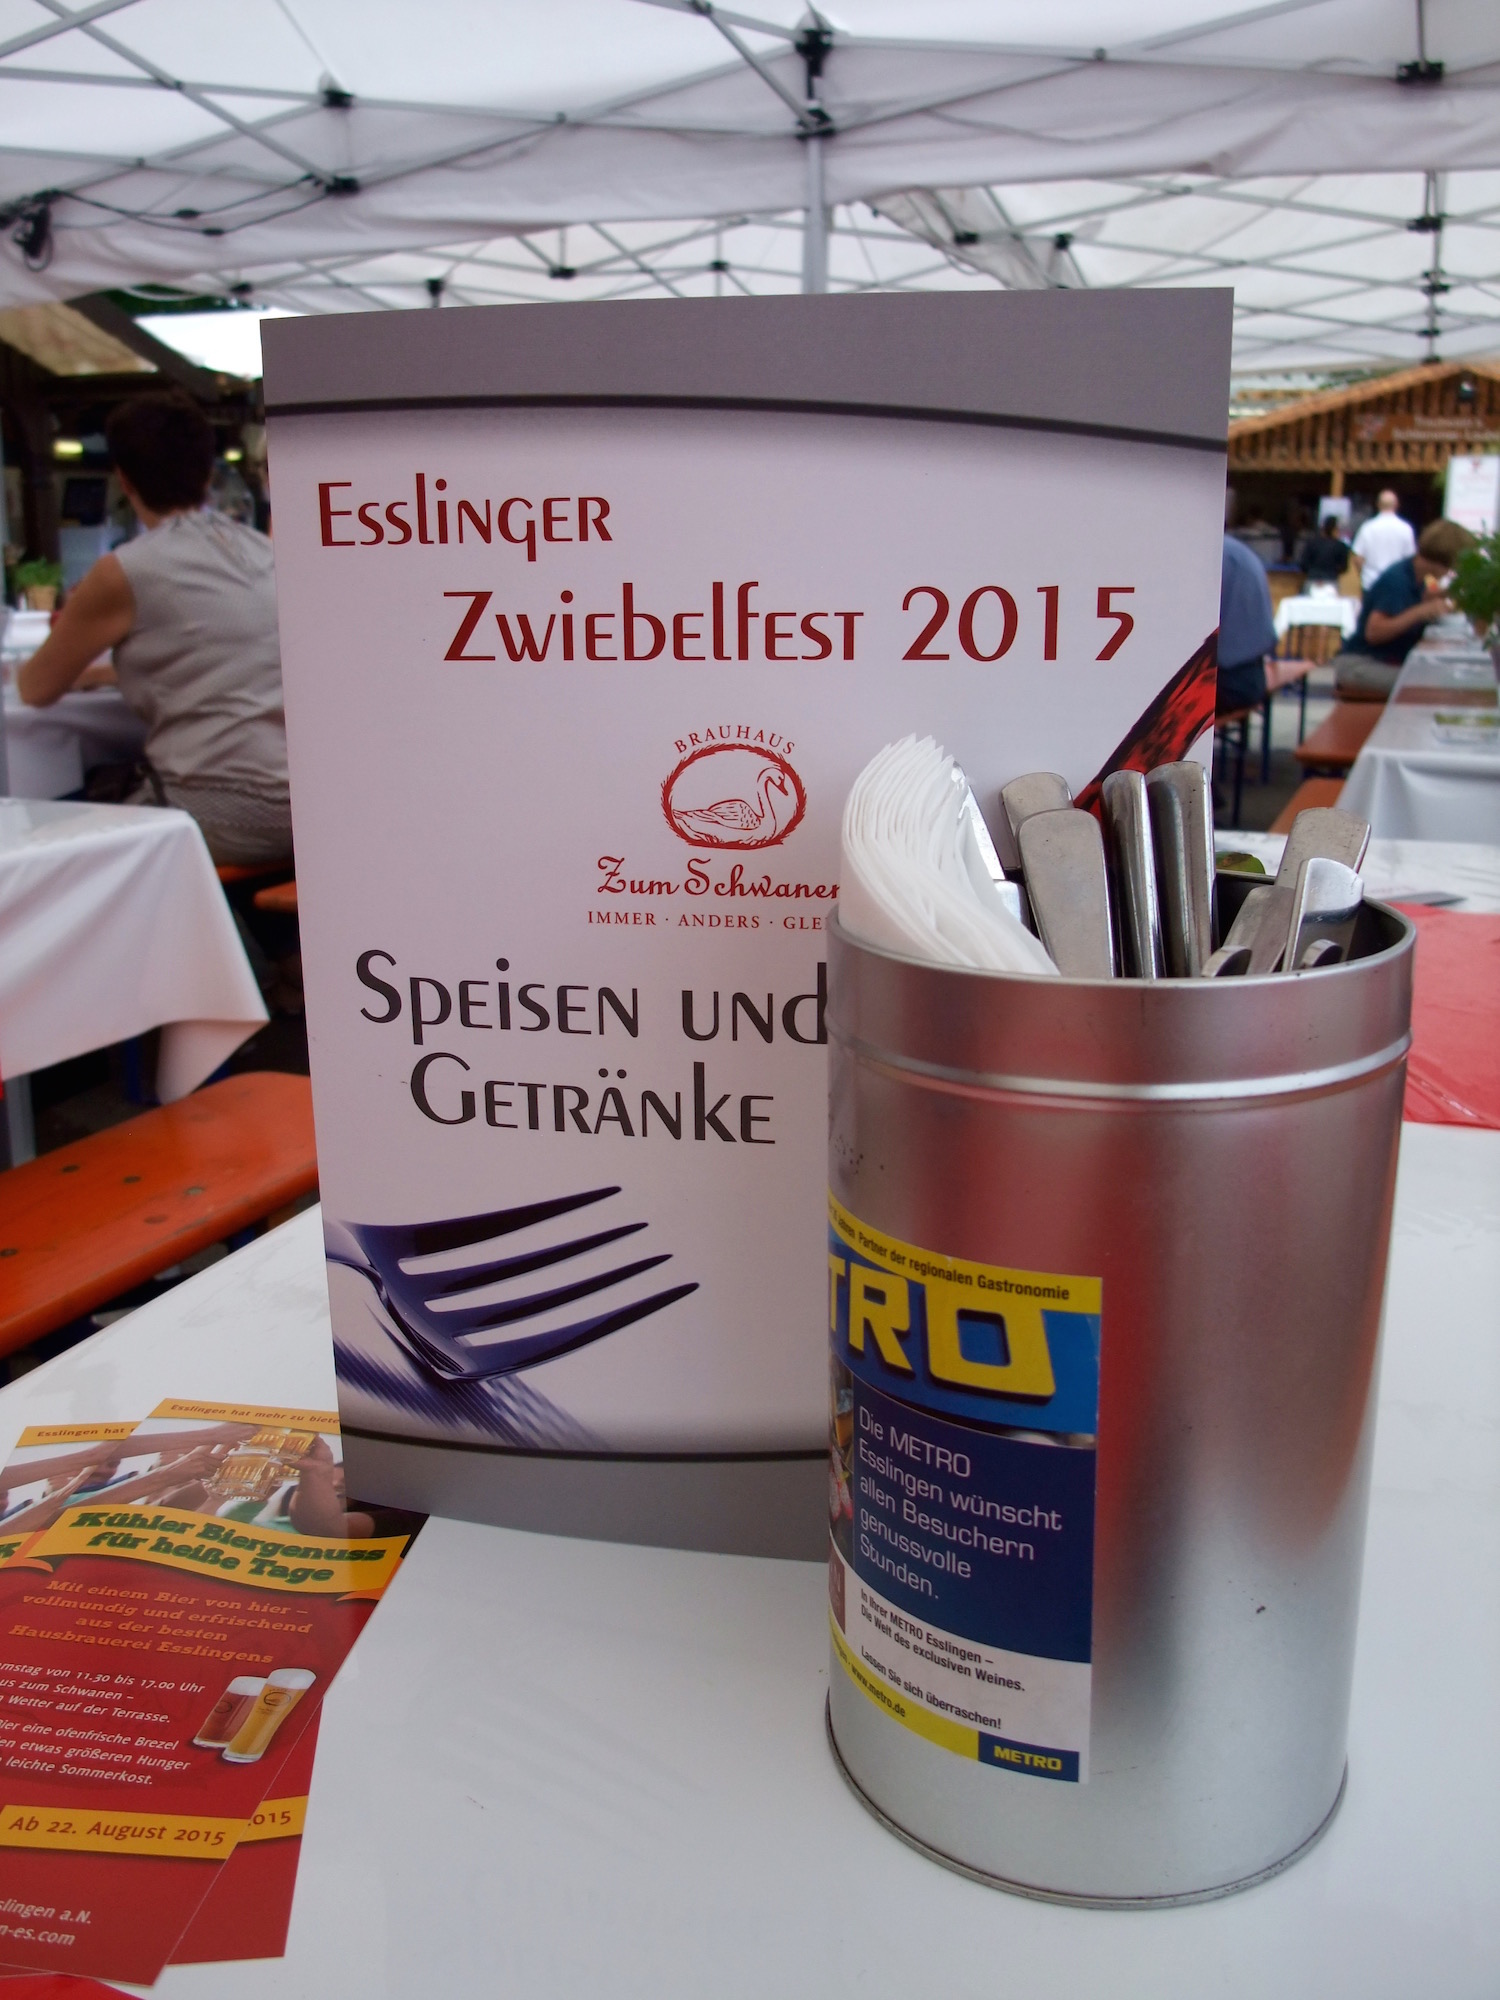 Sitting down for some food at the  Esslinger Zwiebelfest